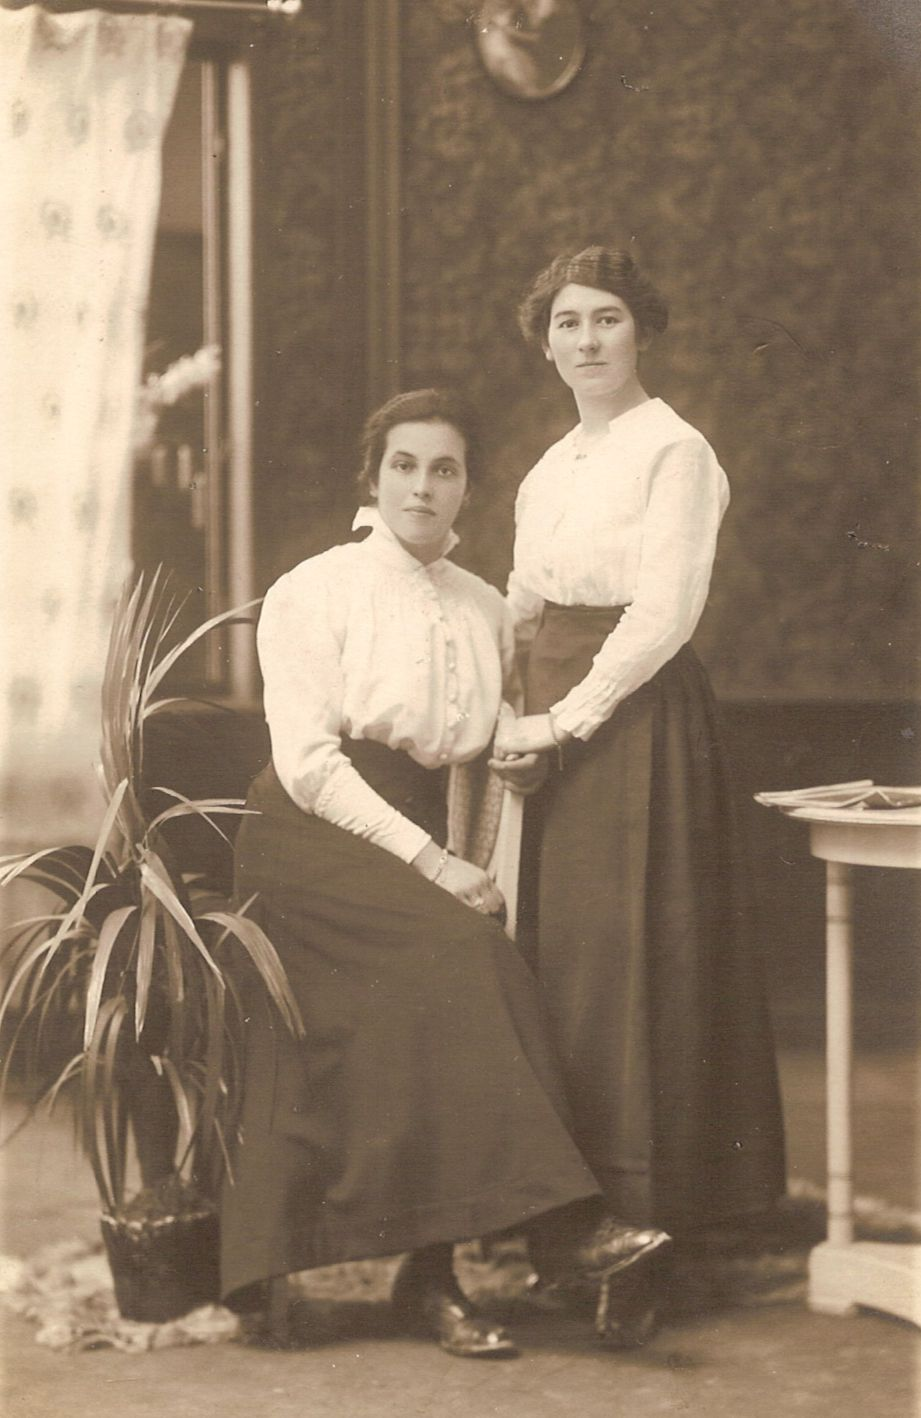 Aunt Berta (sitting), with a friend